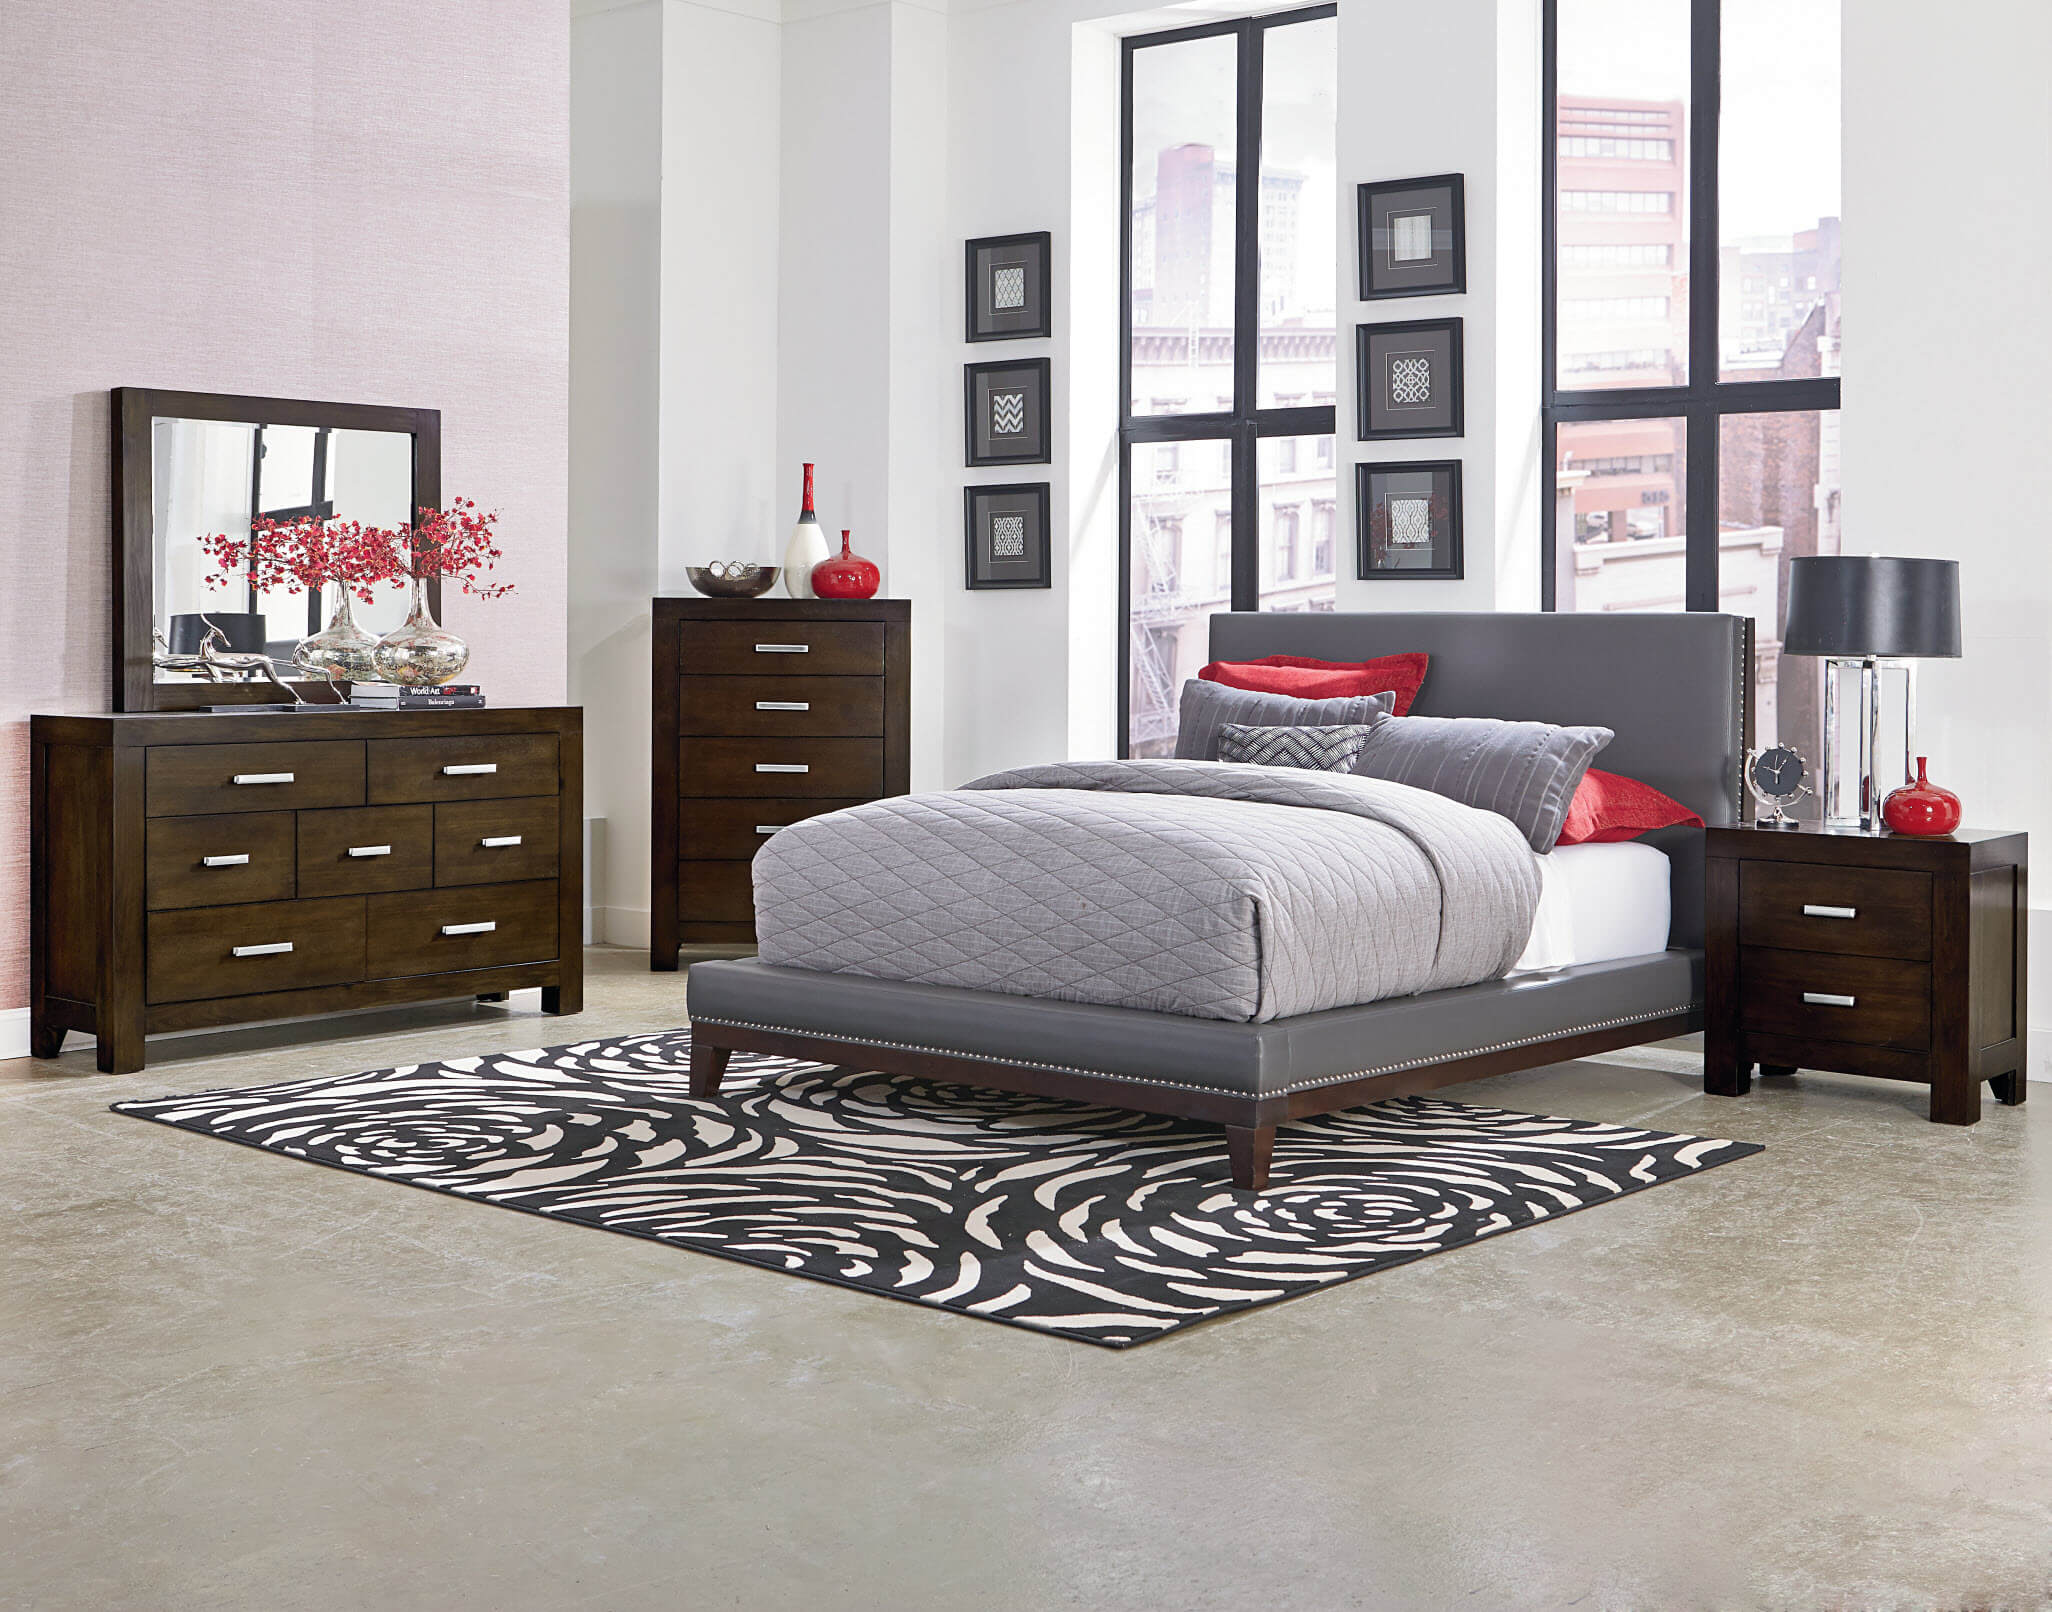 Couture Platform Bedroom Set Bedroom Furniture Sets - Grey bedroom with brown furniture